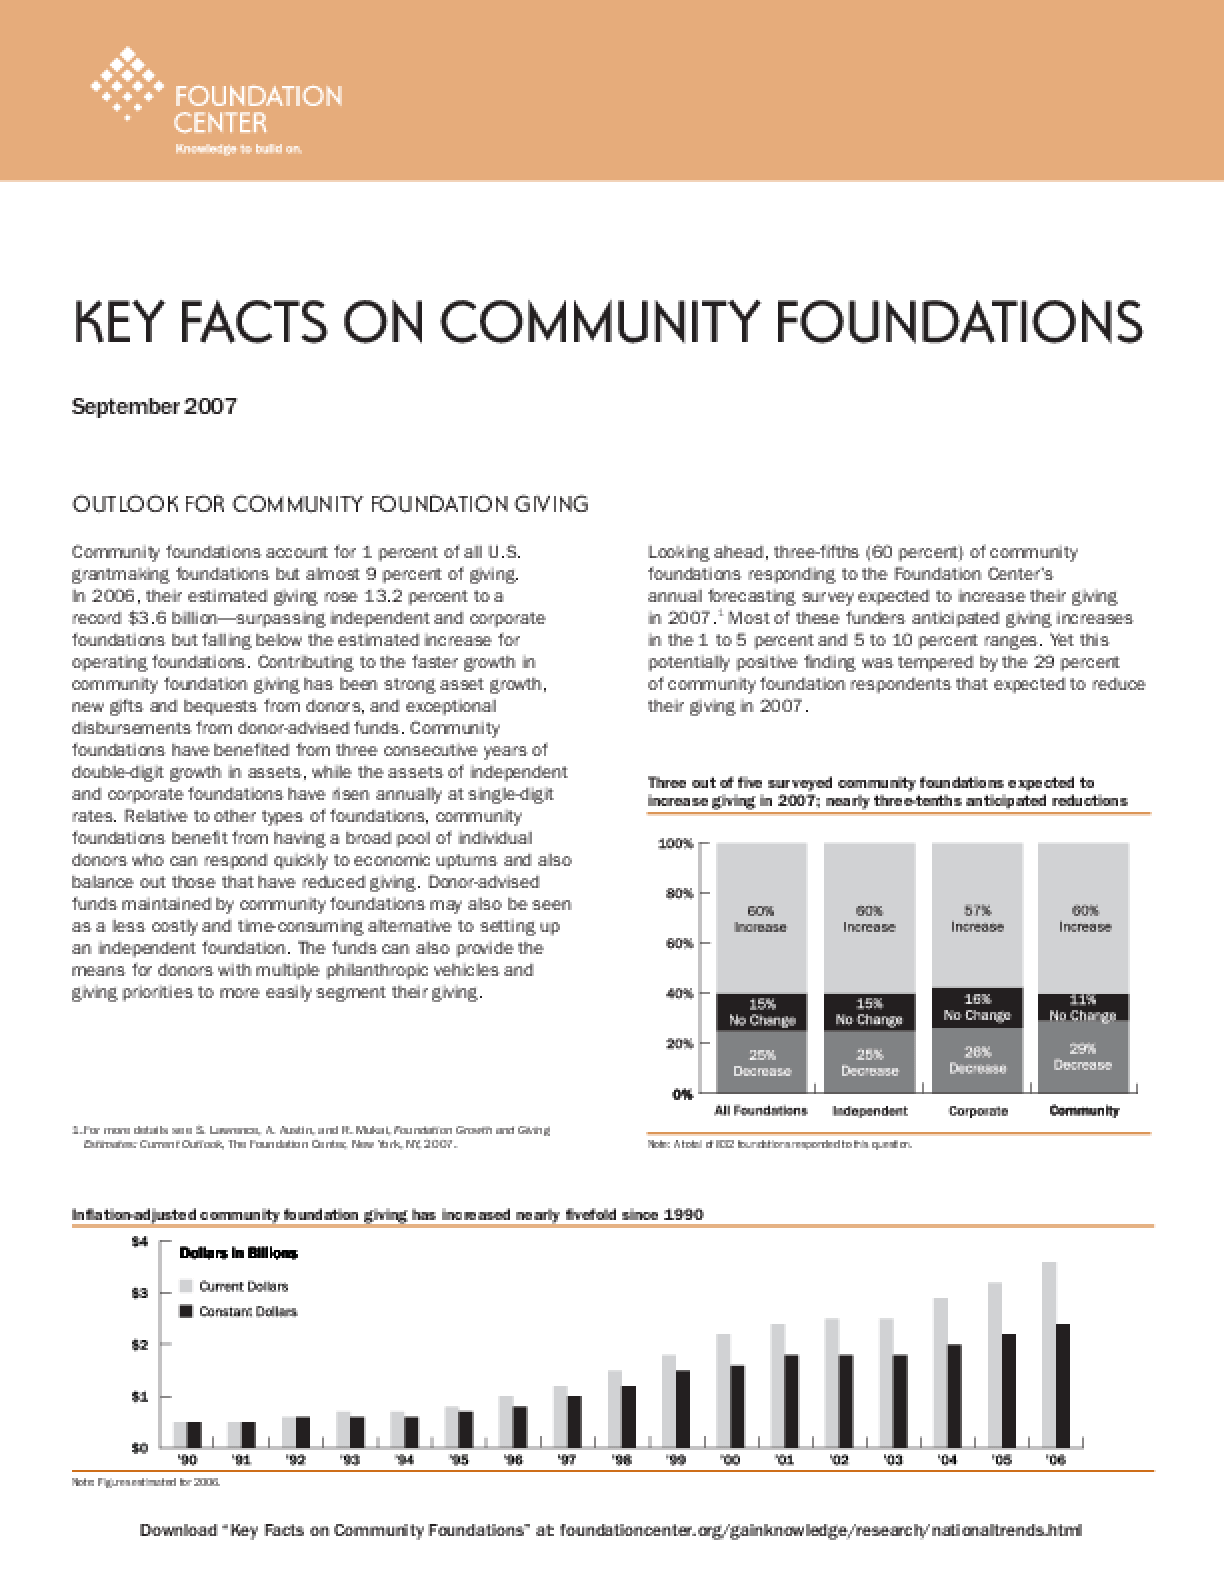 Key Facts on Community Foundations 2007